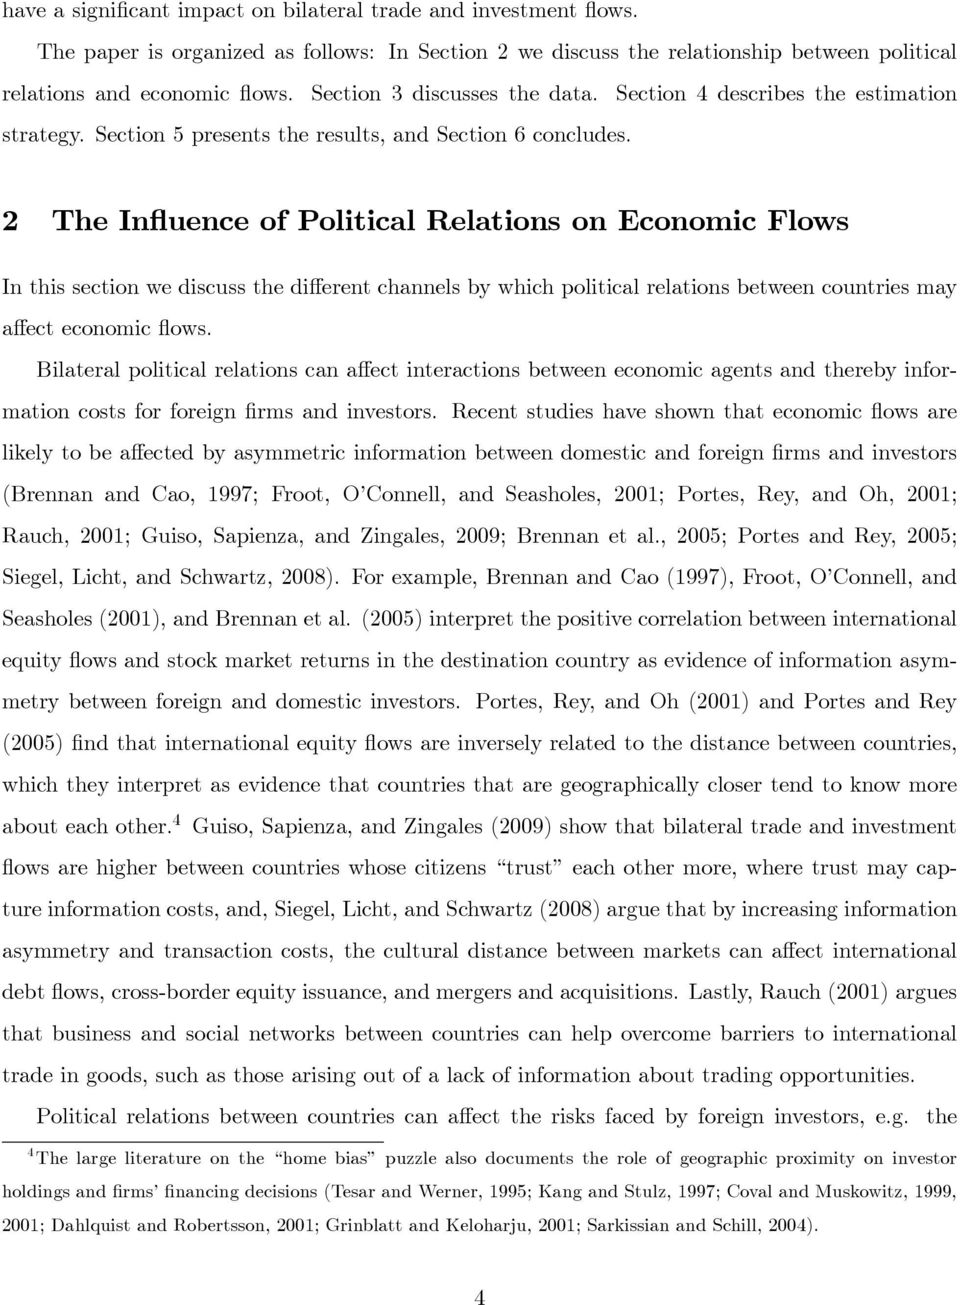 2 The Influence of Political Relations on Economic Flows In this section we discuss the different channels by which political relations between countries may affect economic flows.